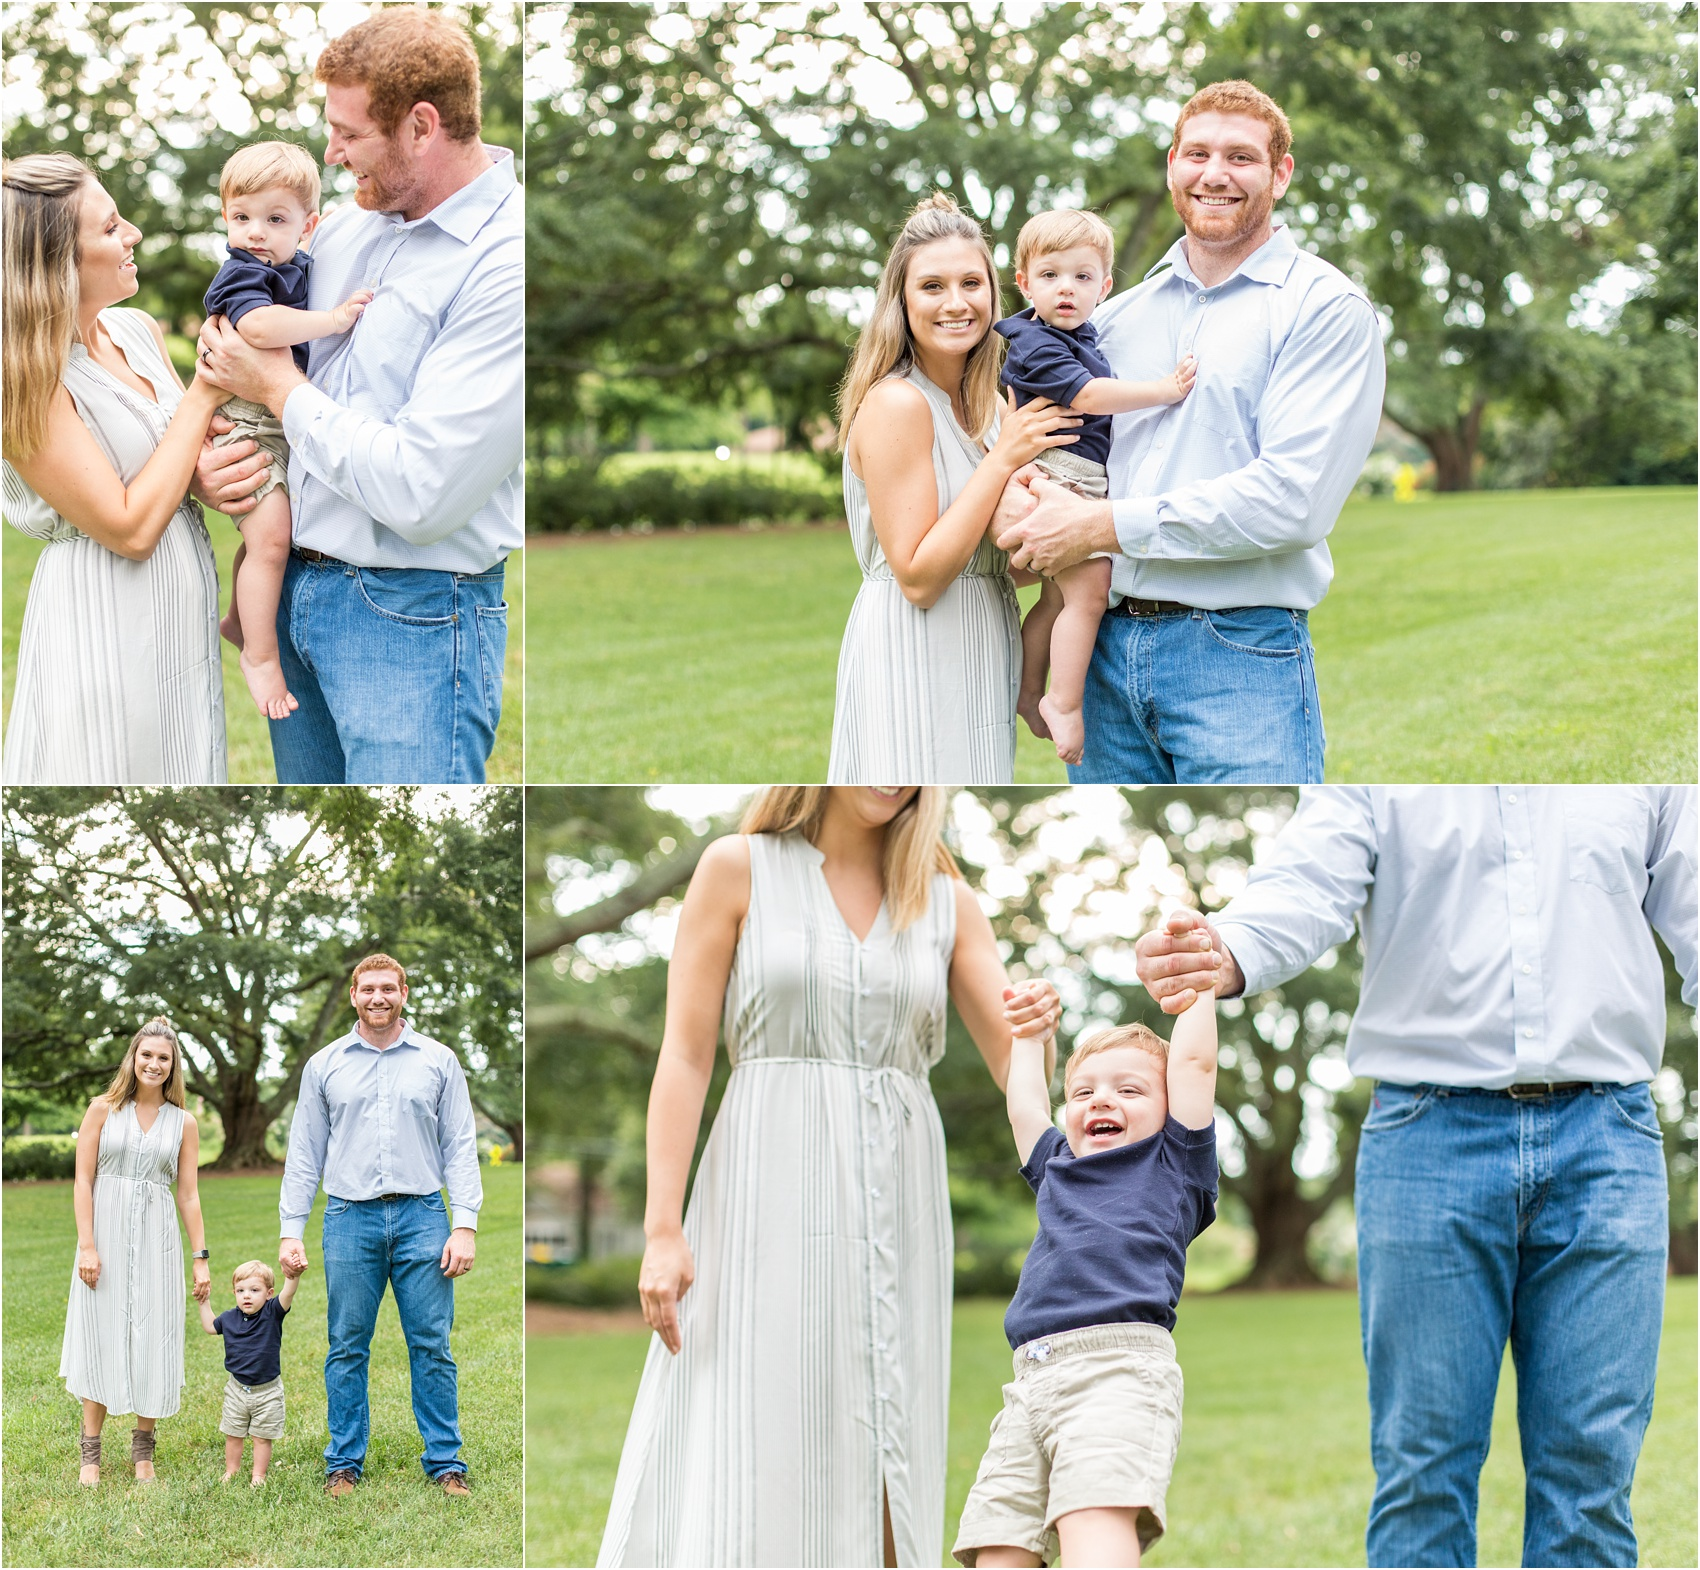 Savannah Eve Photography- May Family-3.jpg